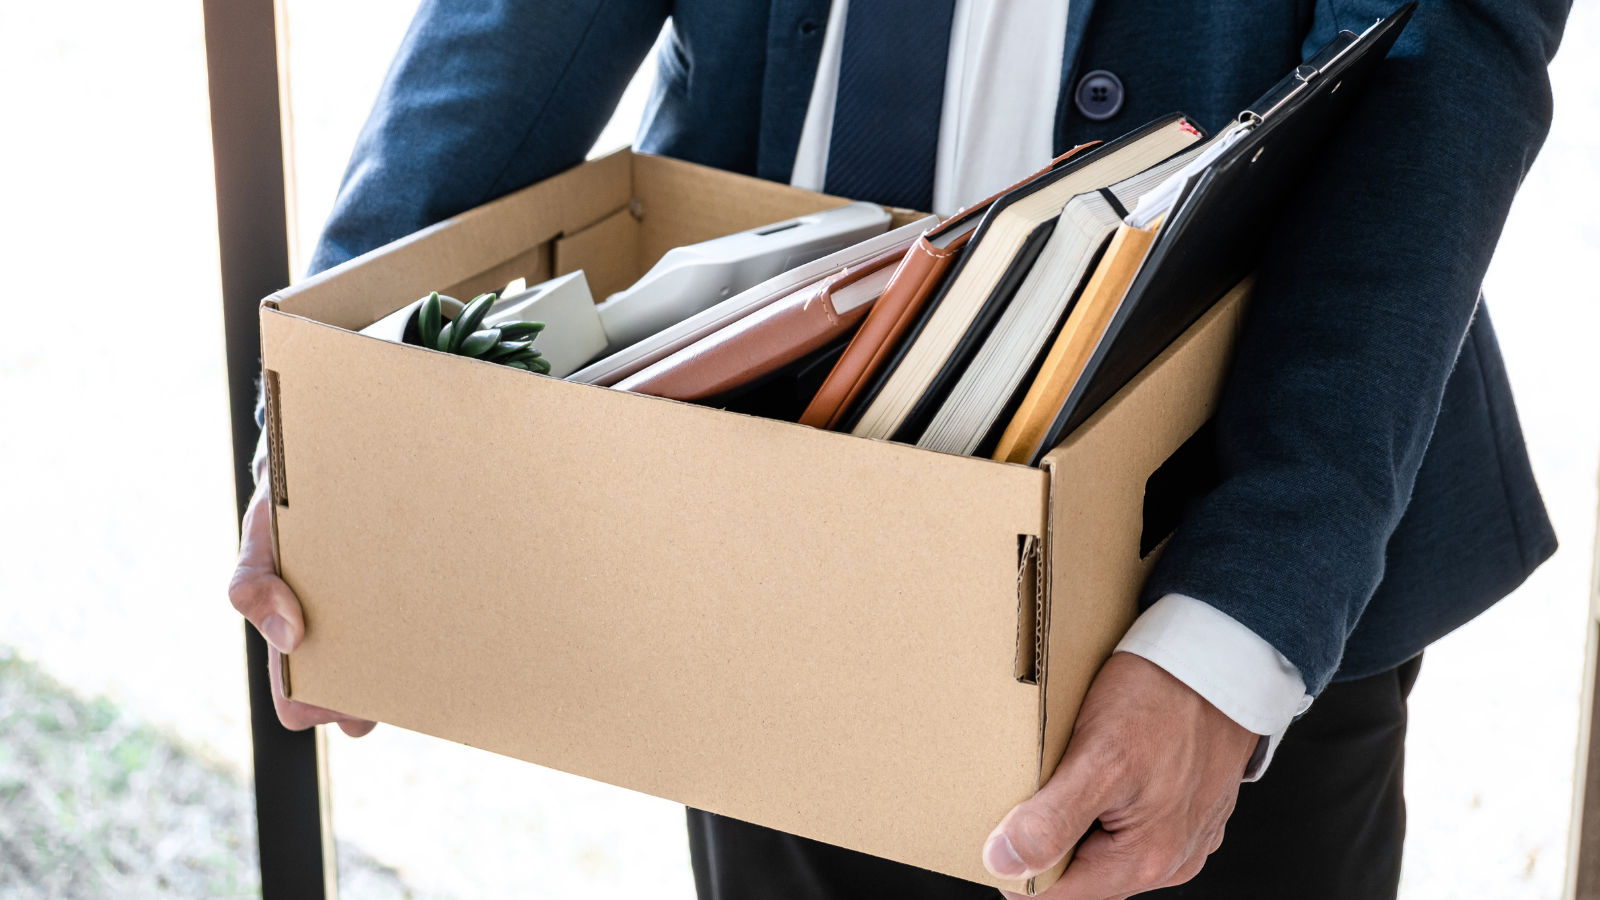 Person carrying a cardboard box containing personal office items